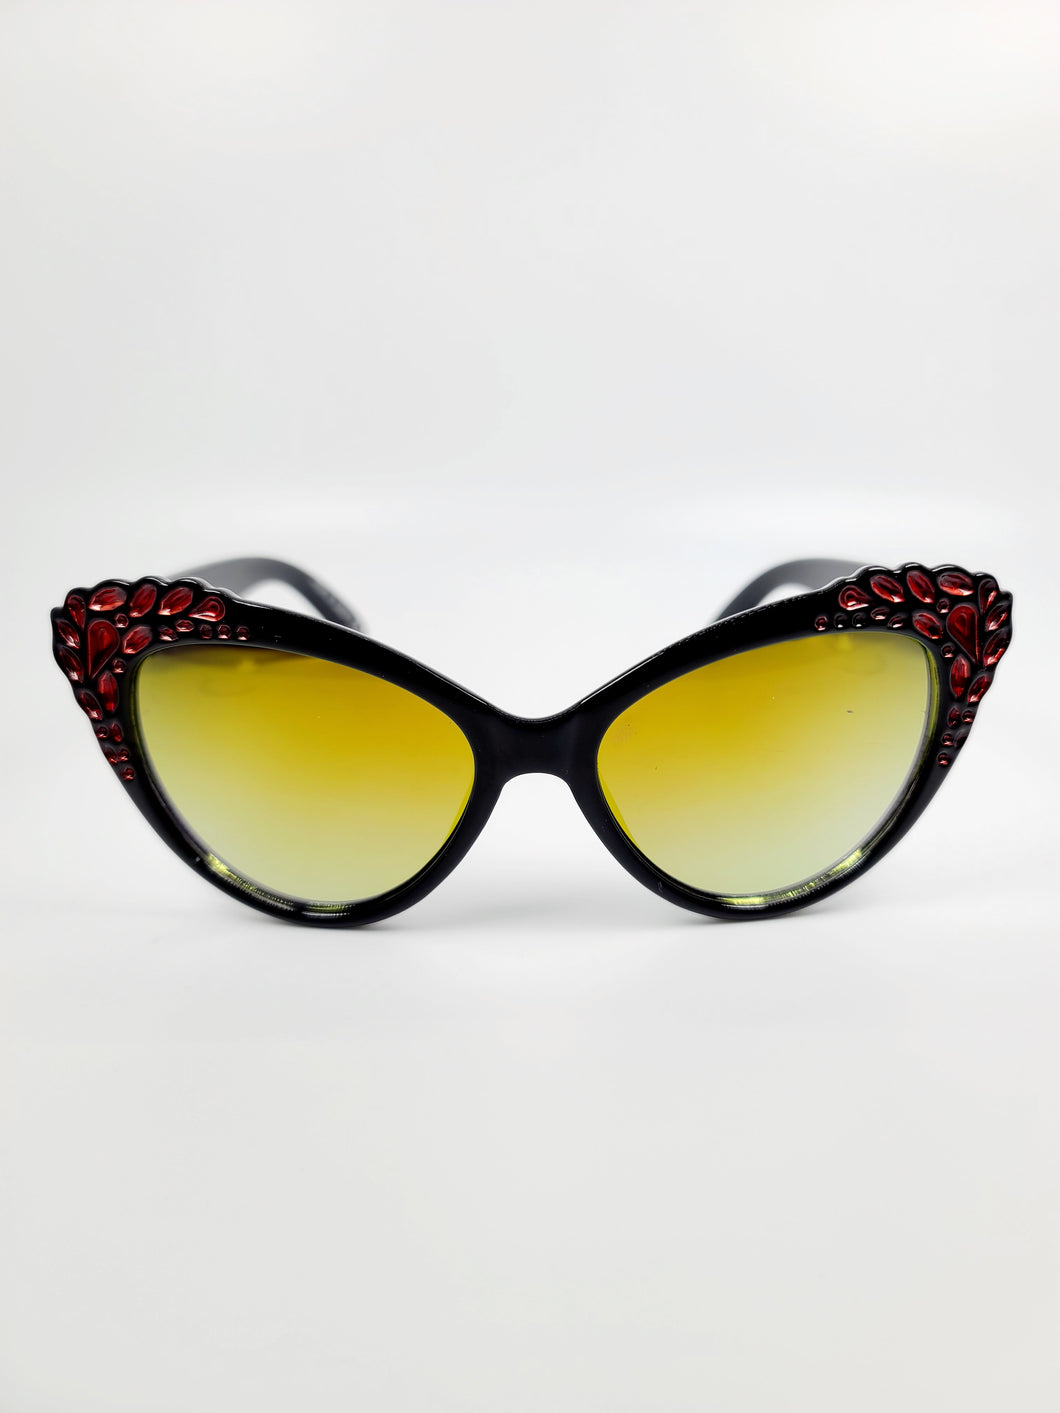 black cat eye frame yellow lens sunglasses with red gem detail